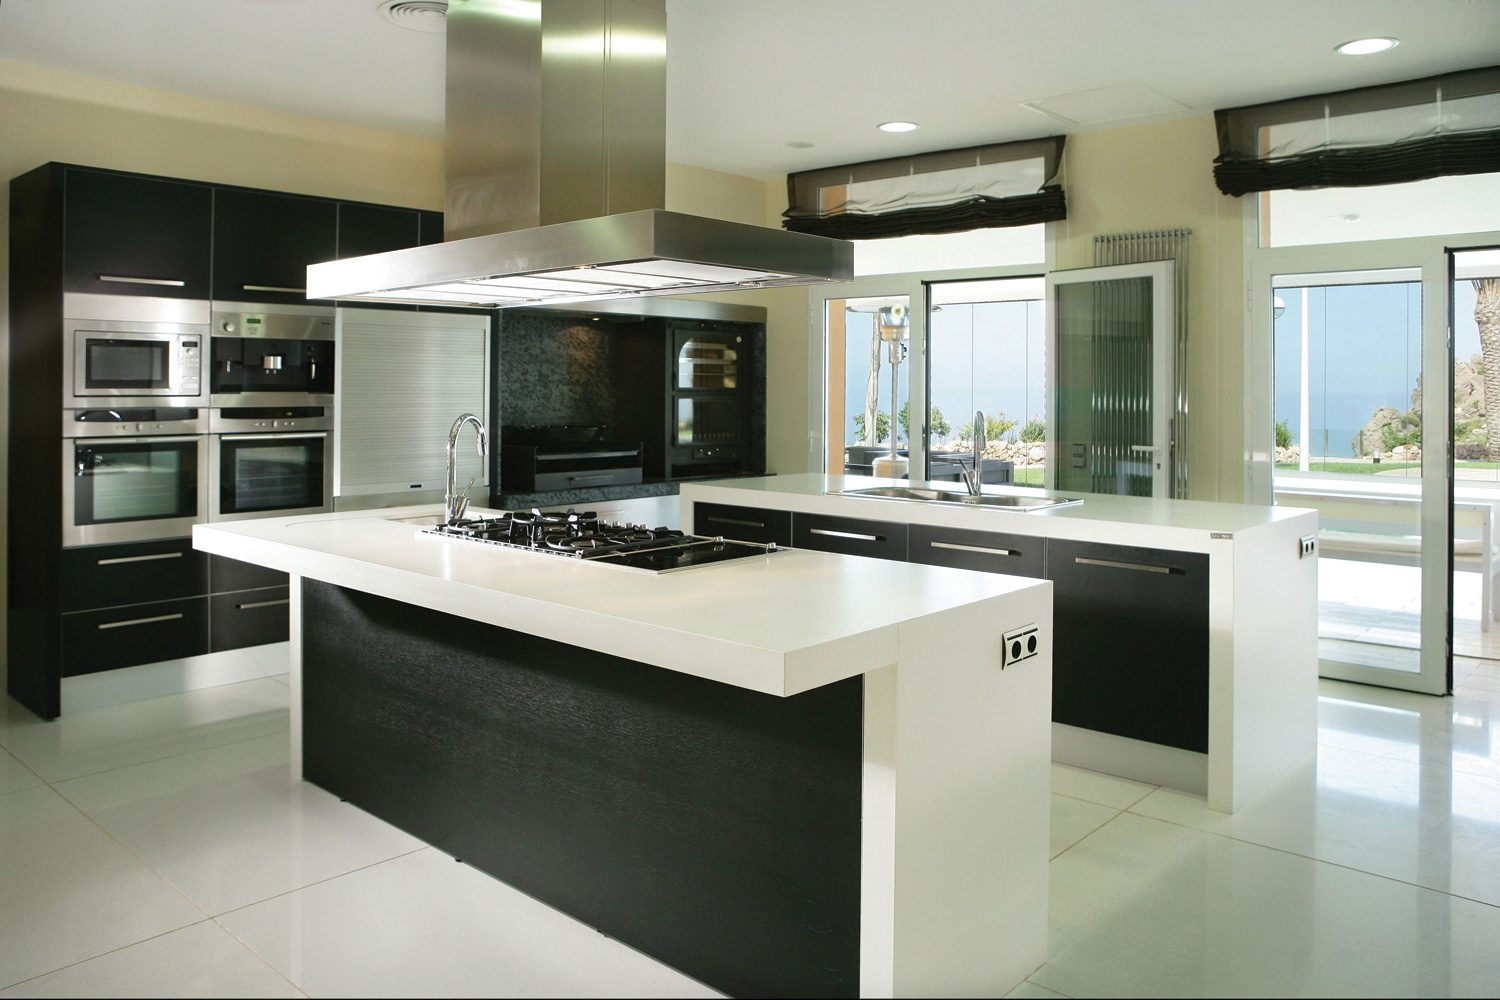 virtual kitchen color designer encimeras de silestone im 225 genes y fotos 6915